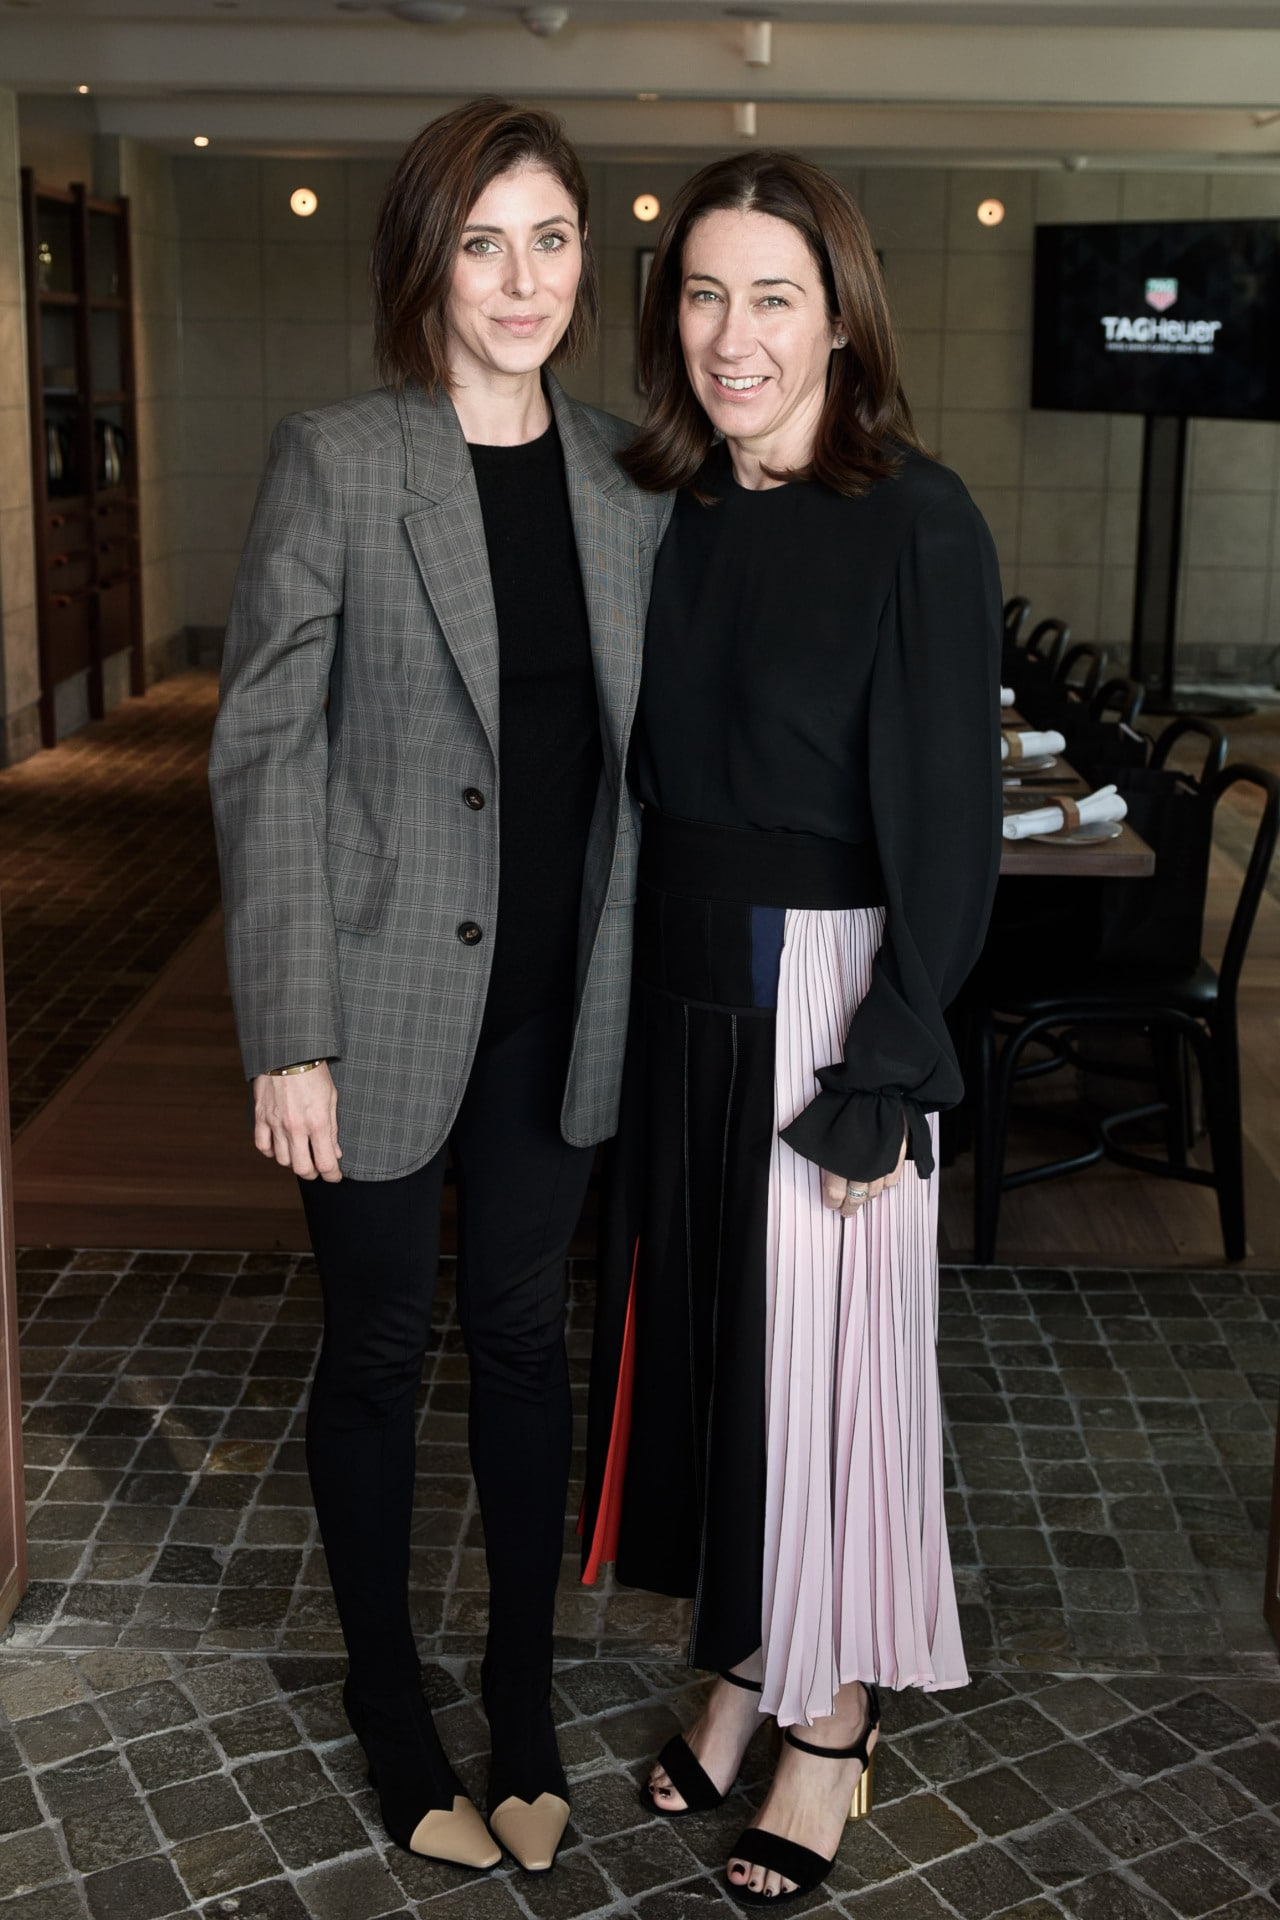 GQ Magazine editorMichael Christensen attends the TAG Heuer 2018 collection luncheon. Image credit: Supplied